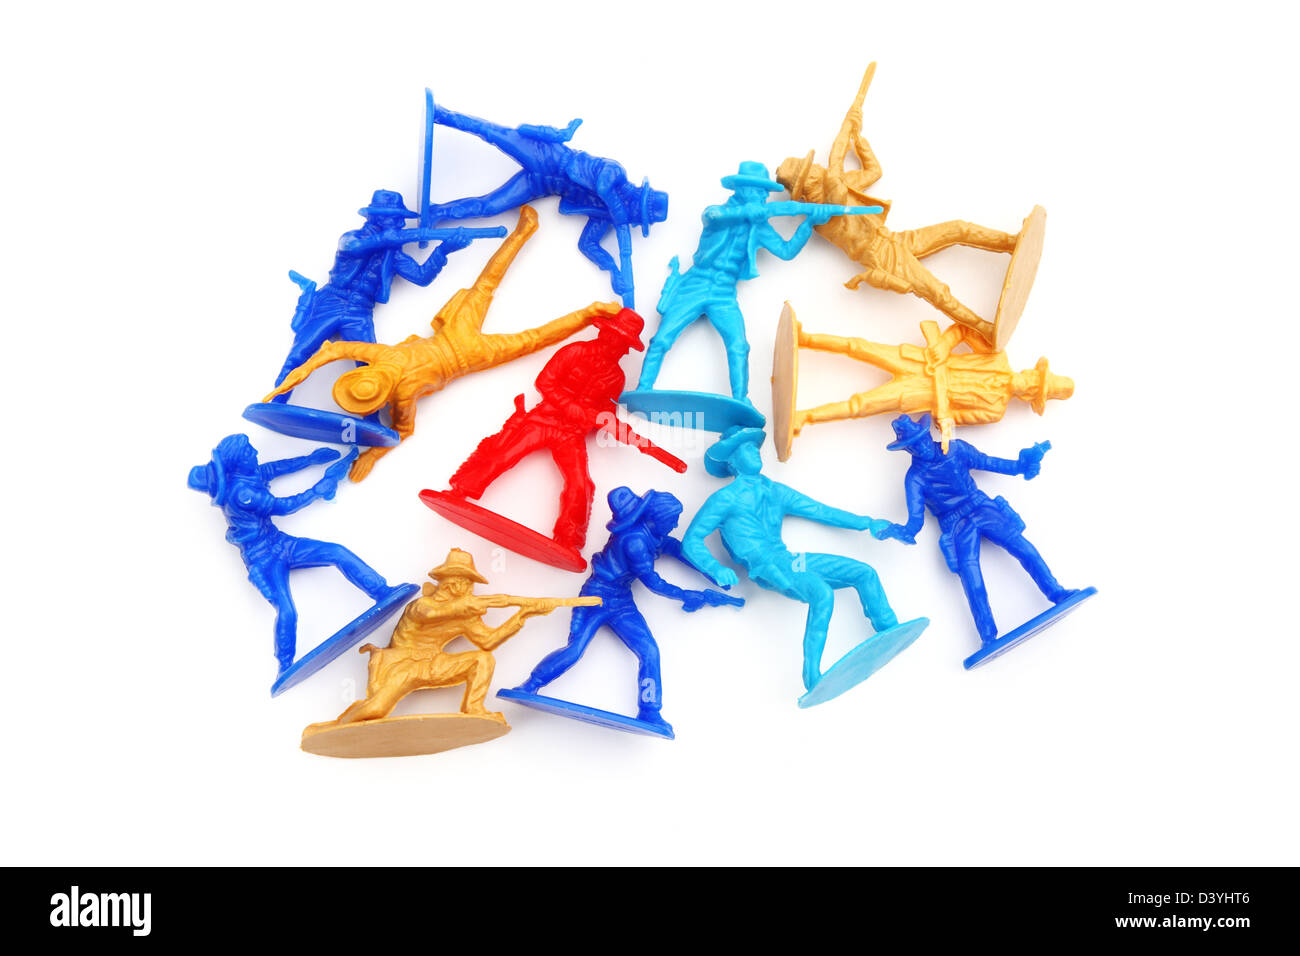 An assortment of toy cowboys and in a loose pile on white background. - Stock Image